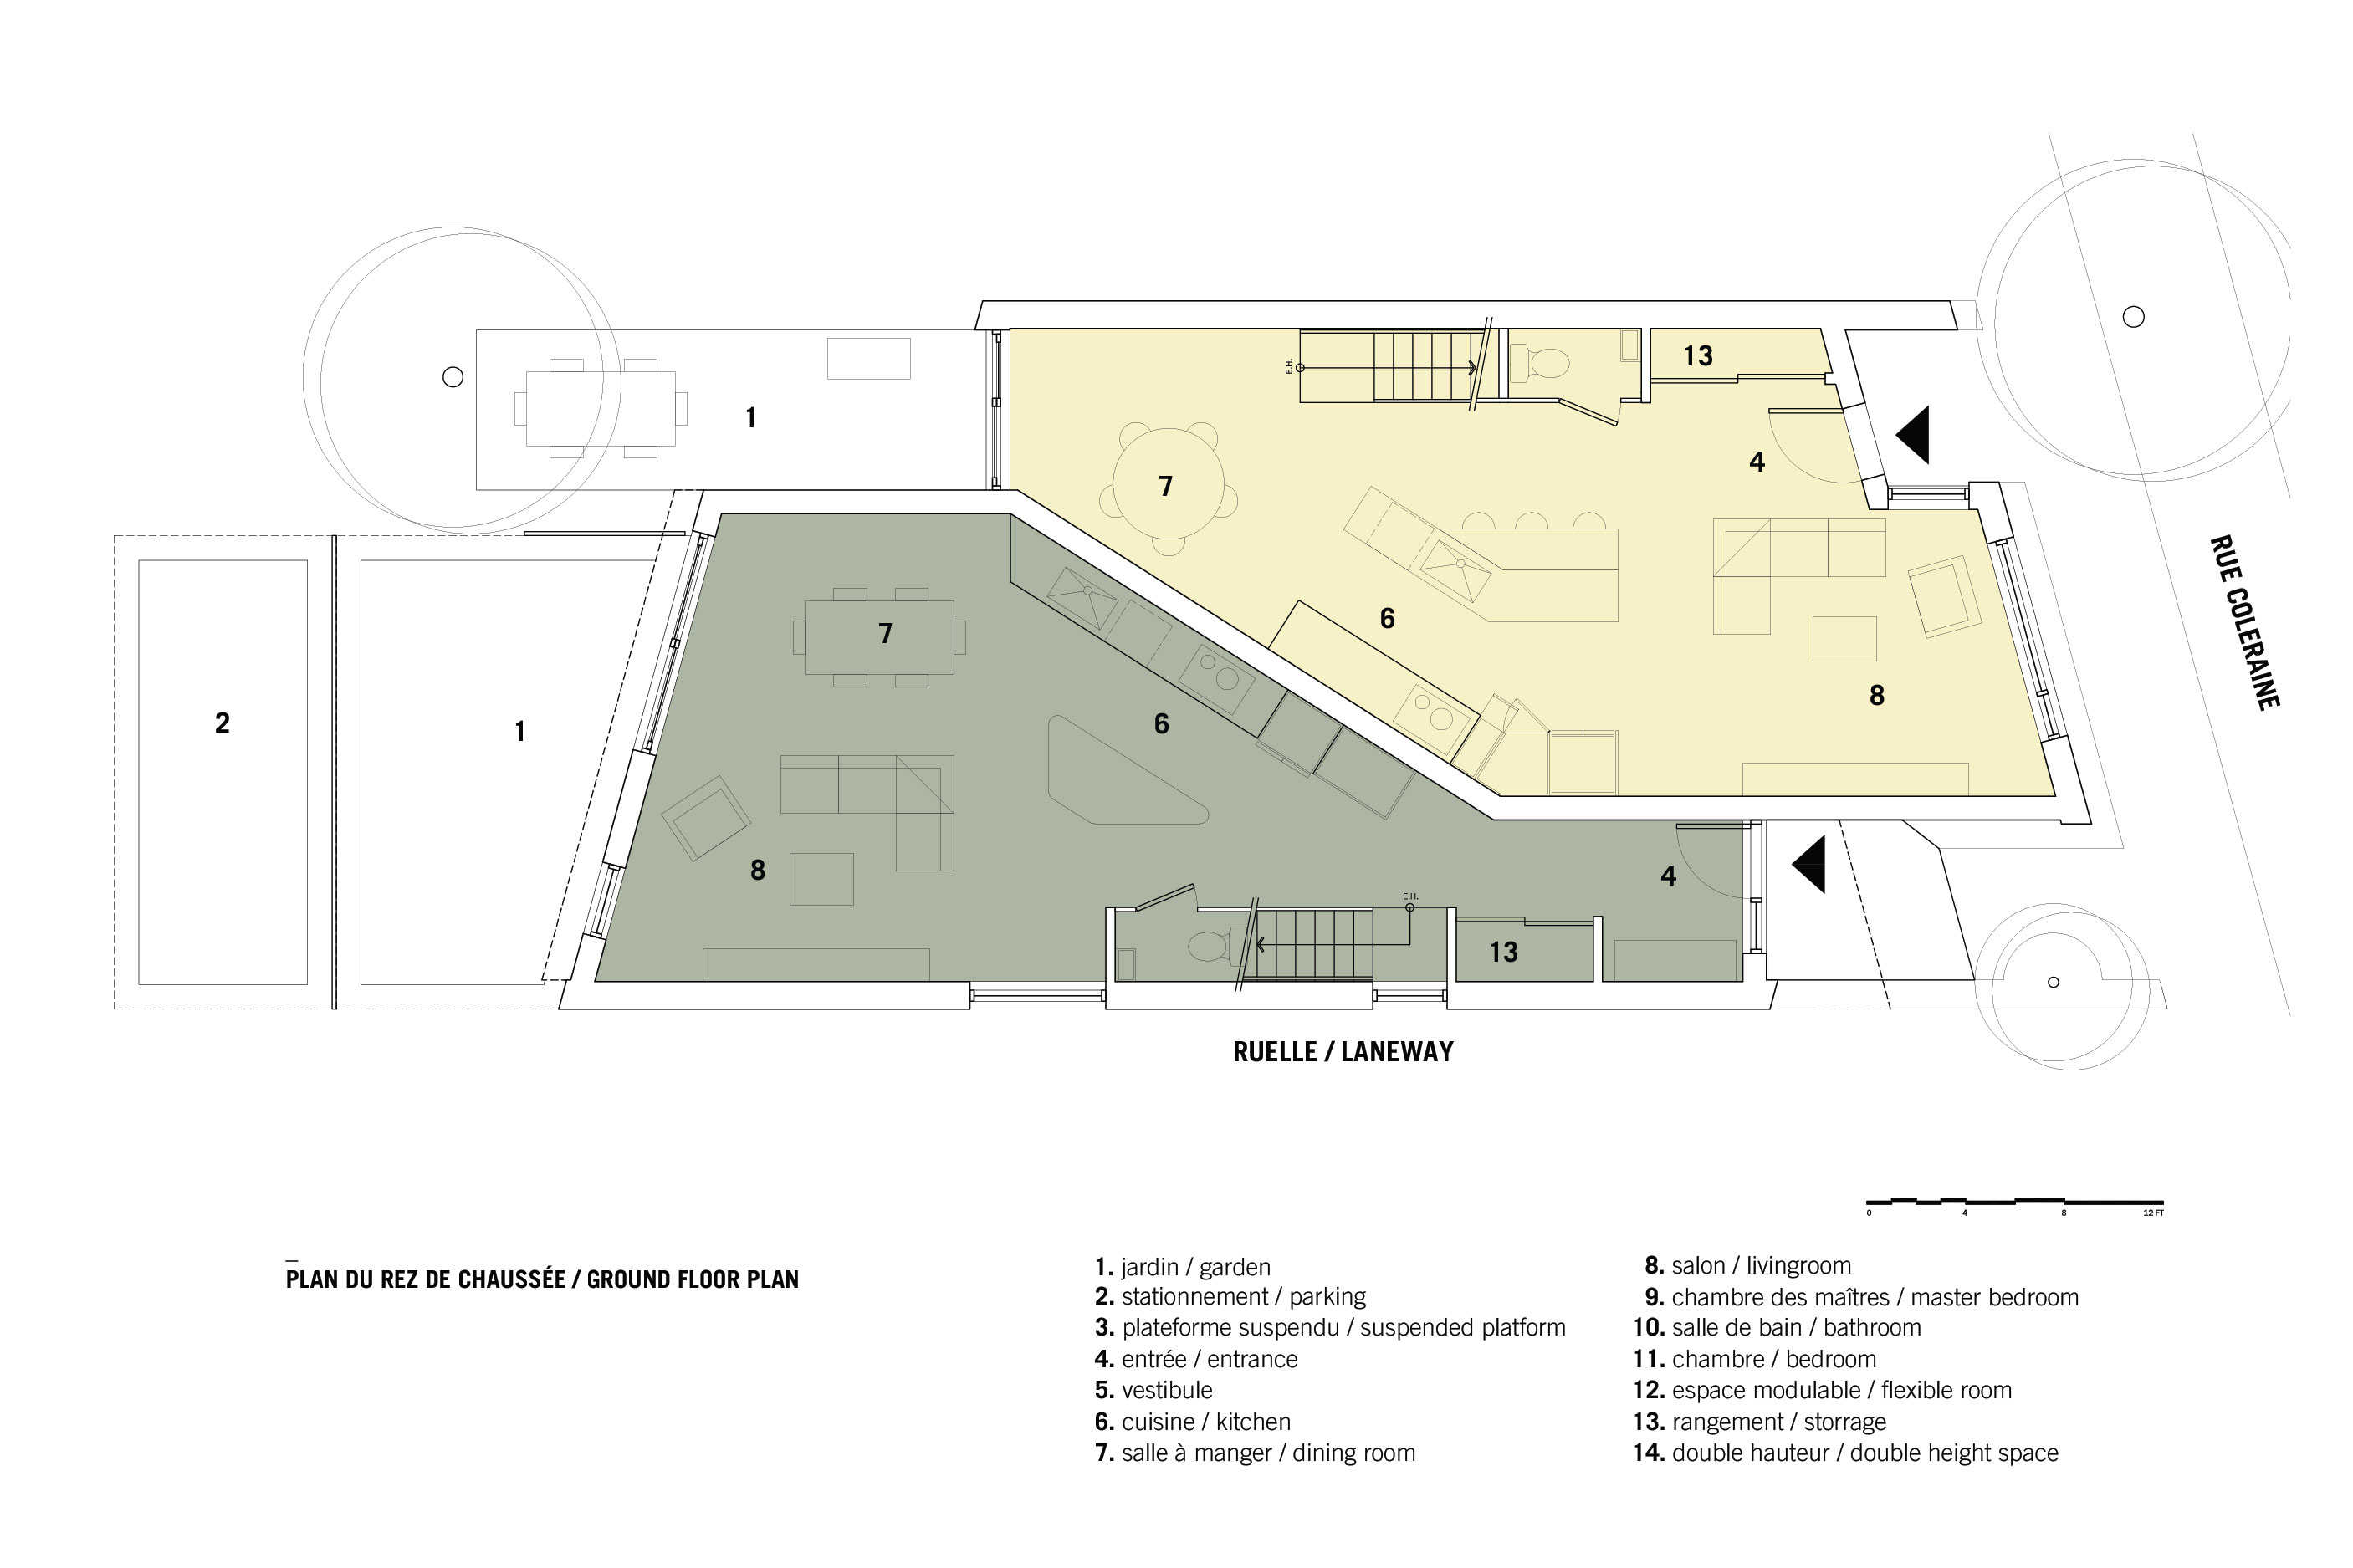 coleraine_PLAN-1